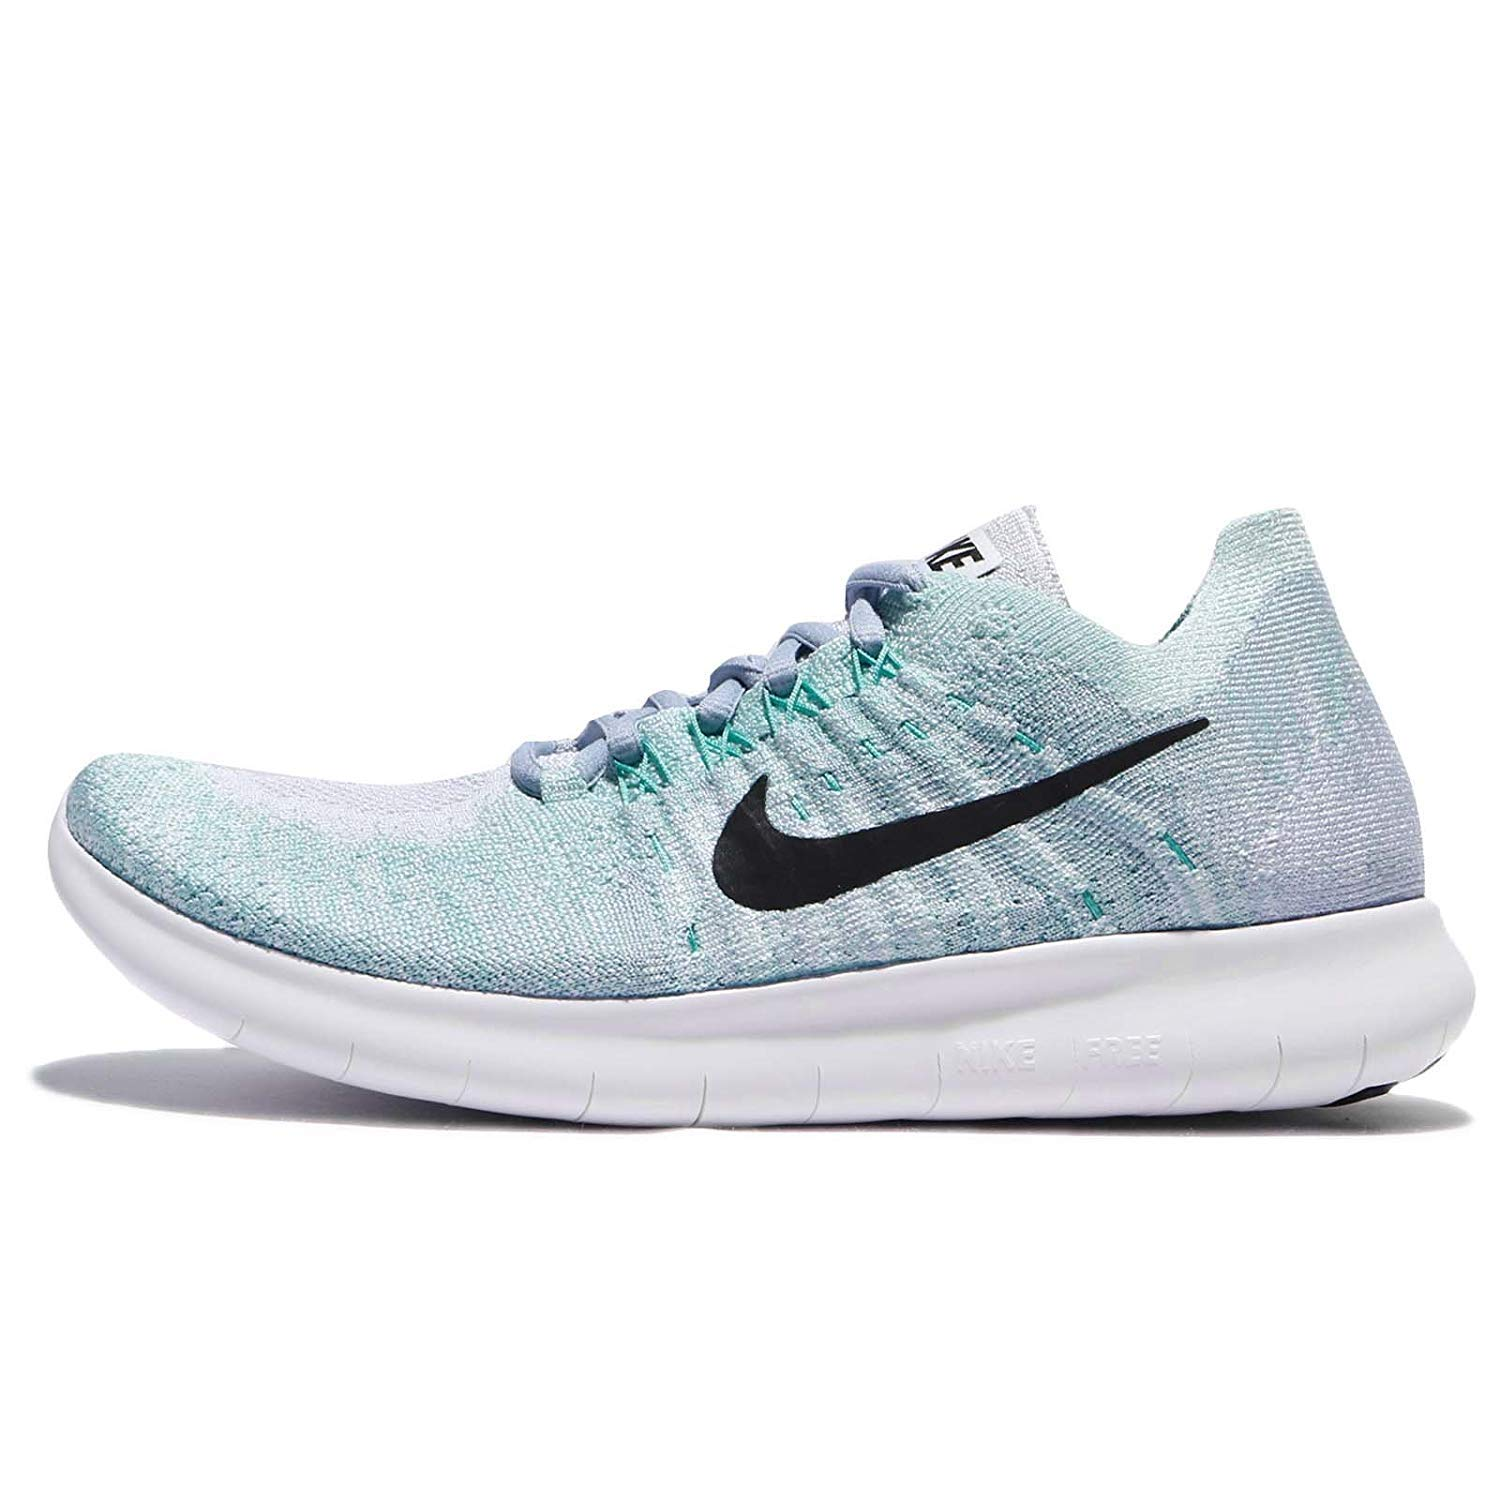 pretty nice ed901 4a5ab Amazon.com   Nike Womens Free Rn Flyknit 2017 Fabric Low Top Lace Up Running,  Blue, Size 11.0   Road Running